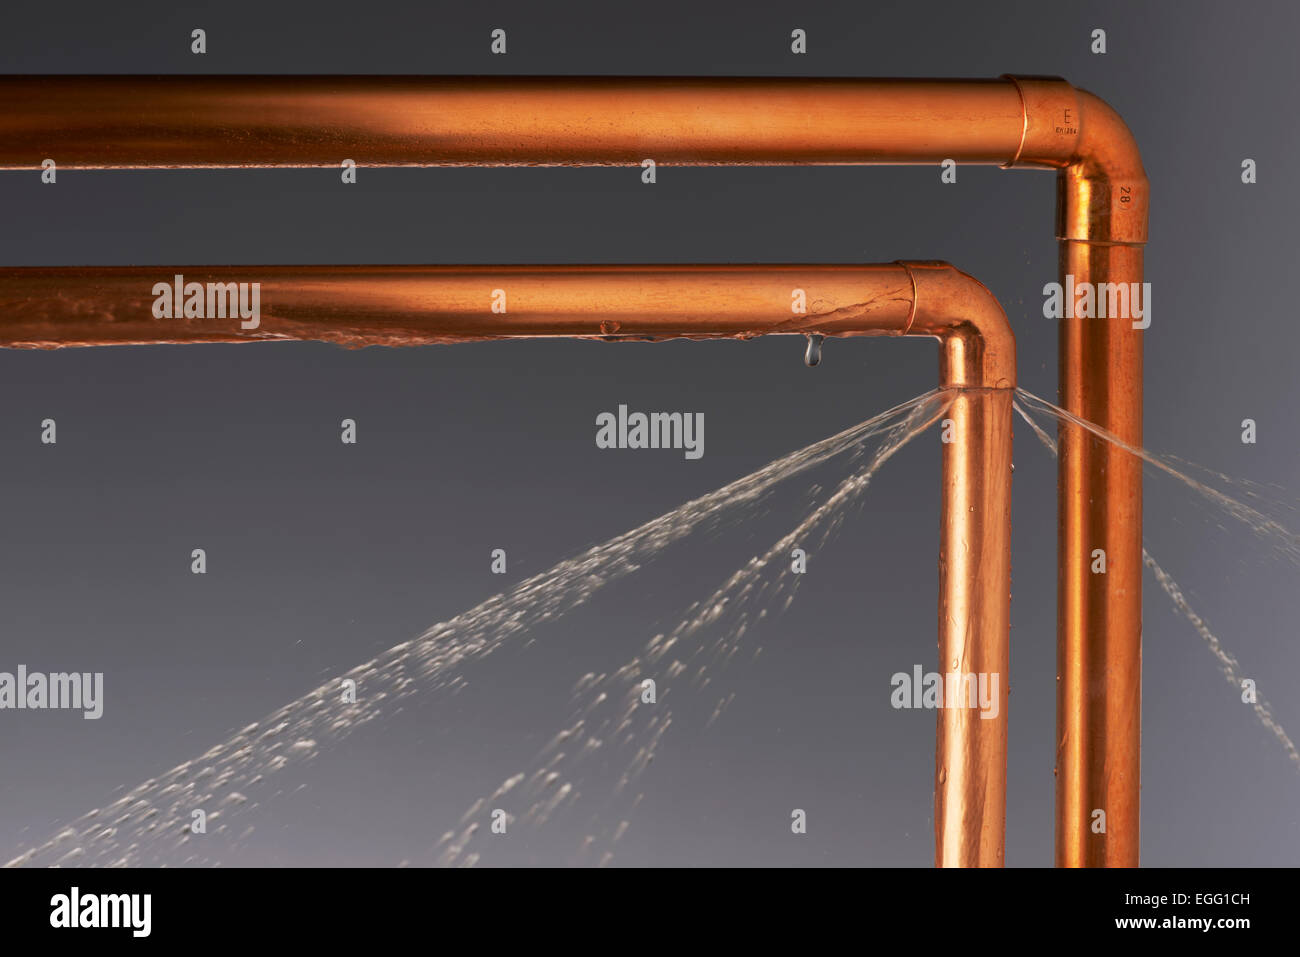 Leaking Burst Pipes - Stock Image